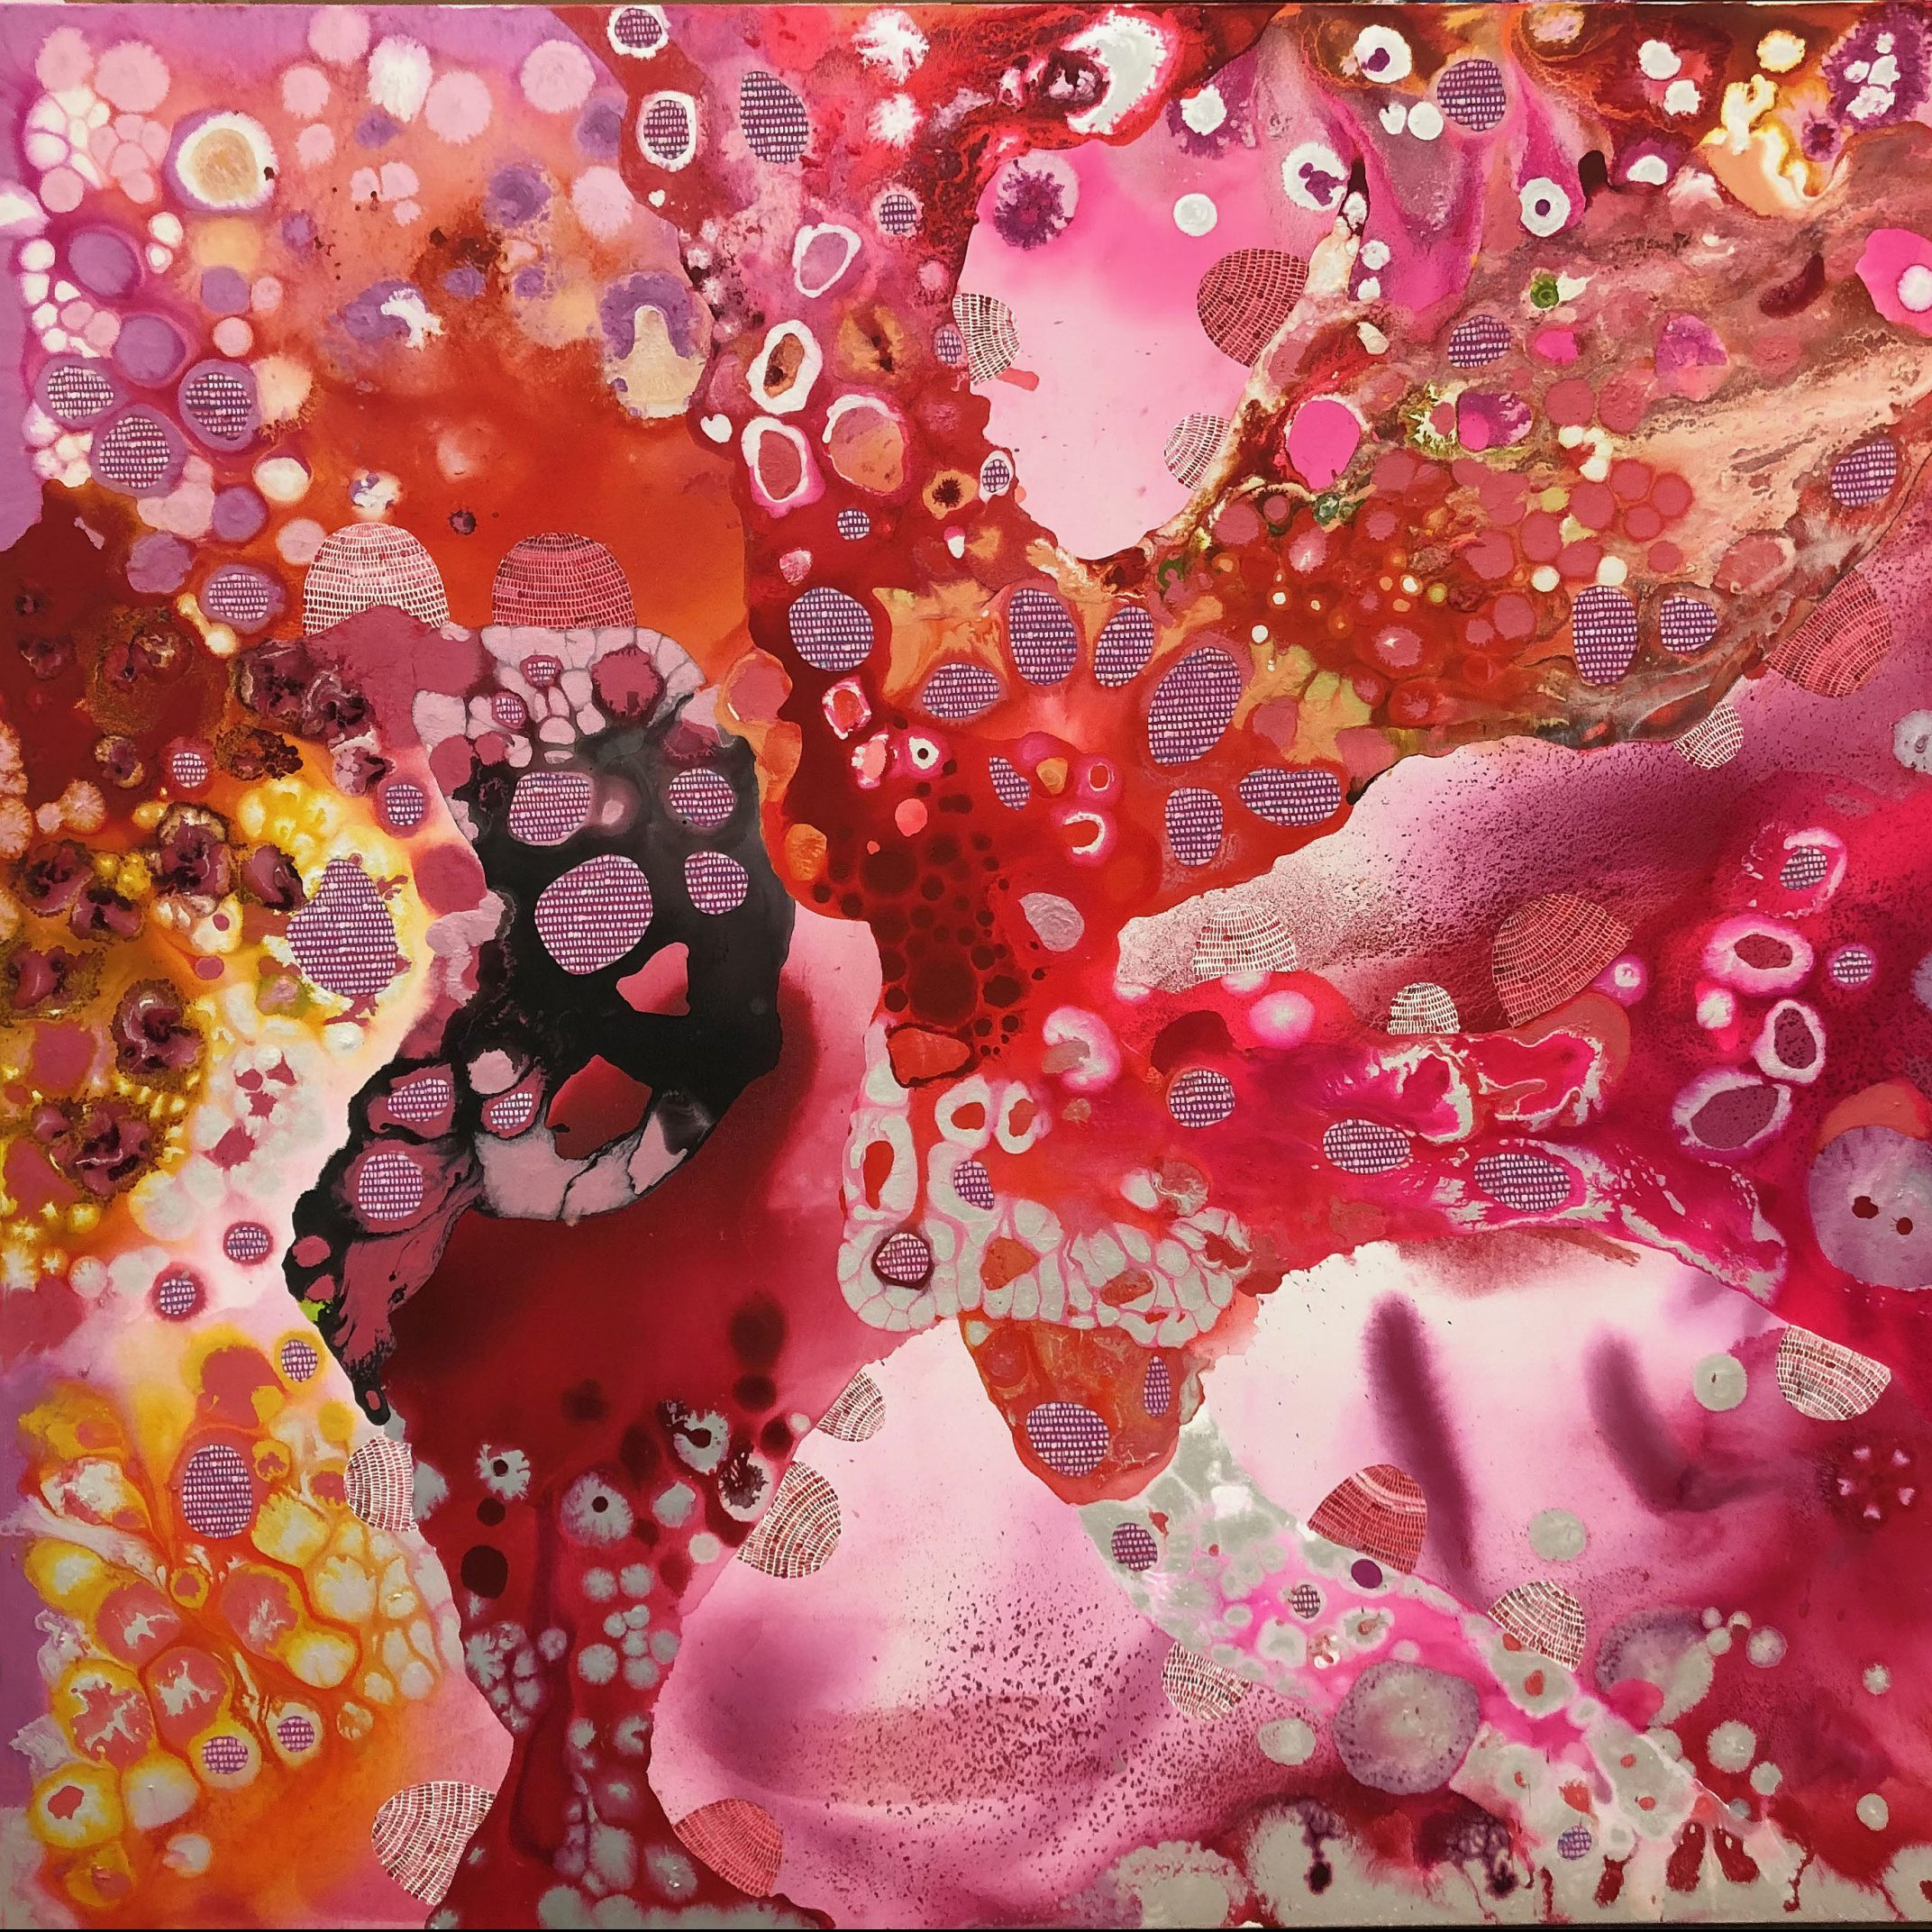 An abstract oil painting with bubbles and drips